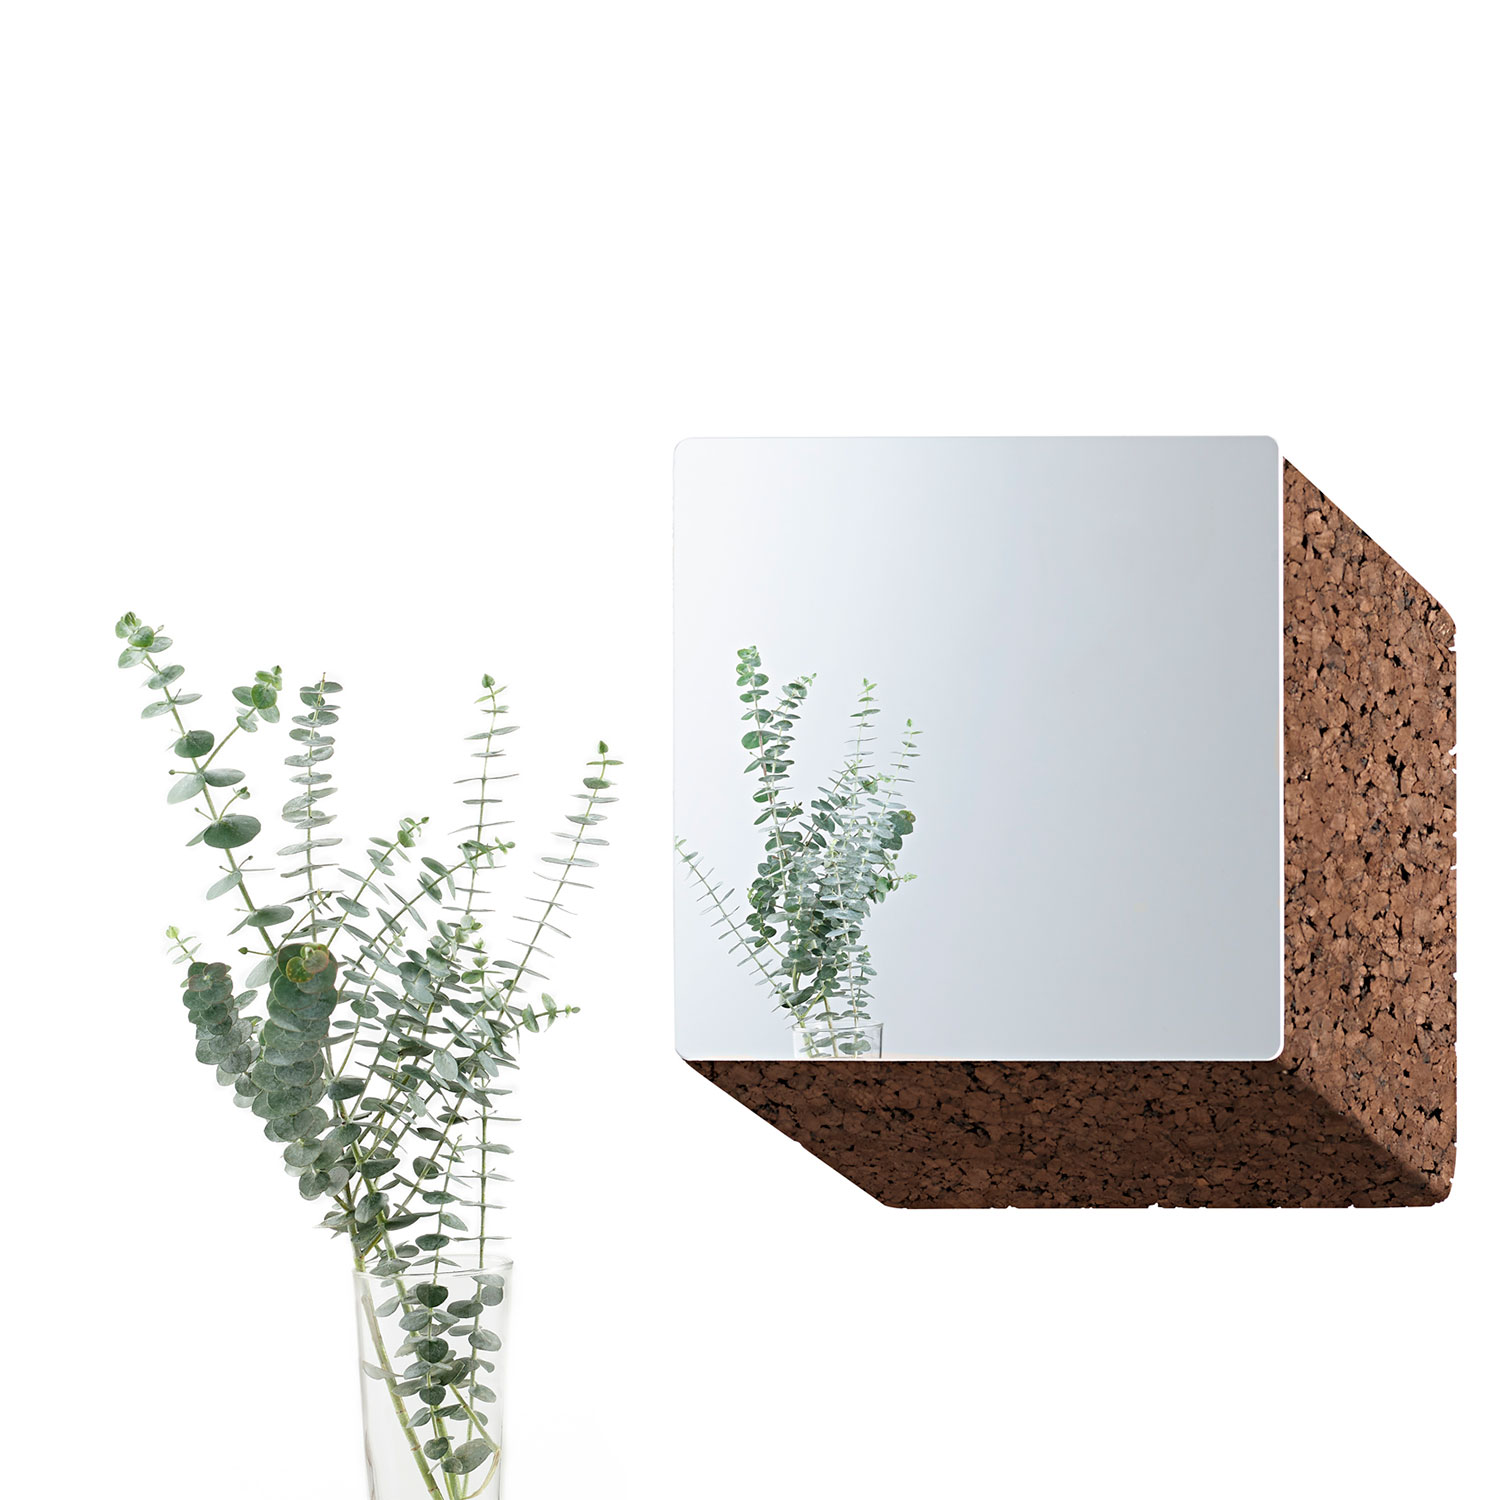 """Exo Square Mirror - It is only used cork of the branches (falca) for the manufacture of cork granules. These are block clusters in autoclave, being 100% natural process, without use of additives. Technology, developed by Sofalca, consists of injecting water vapour through the pallets that will expand and agglutinate with the resins of the cork itself. This """"cooking"""" gives also dark colour to the agglomerated cork, like chocolate. In the production of steam I used biomass, obtained on milling and cleaning the falca, what makes it truly ecological production and without waste, 95% energy self-sufficient. As a super-material, cork offers so many advantages, because in addition to its excellent thermic, acoustic insulation and anti vibration characteristic, it is also a CO2 sink playing a key-role in the environment. 